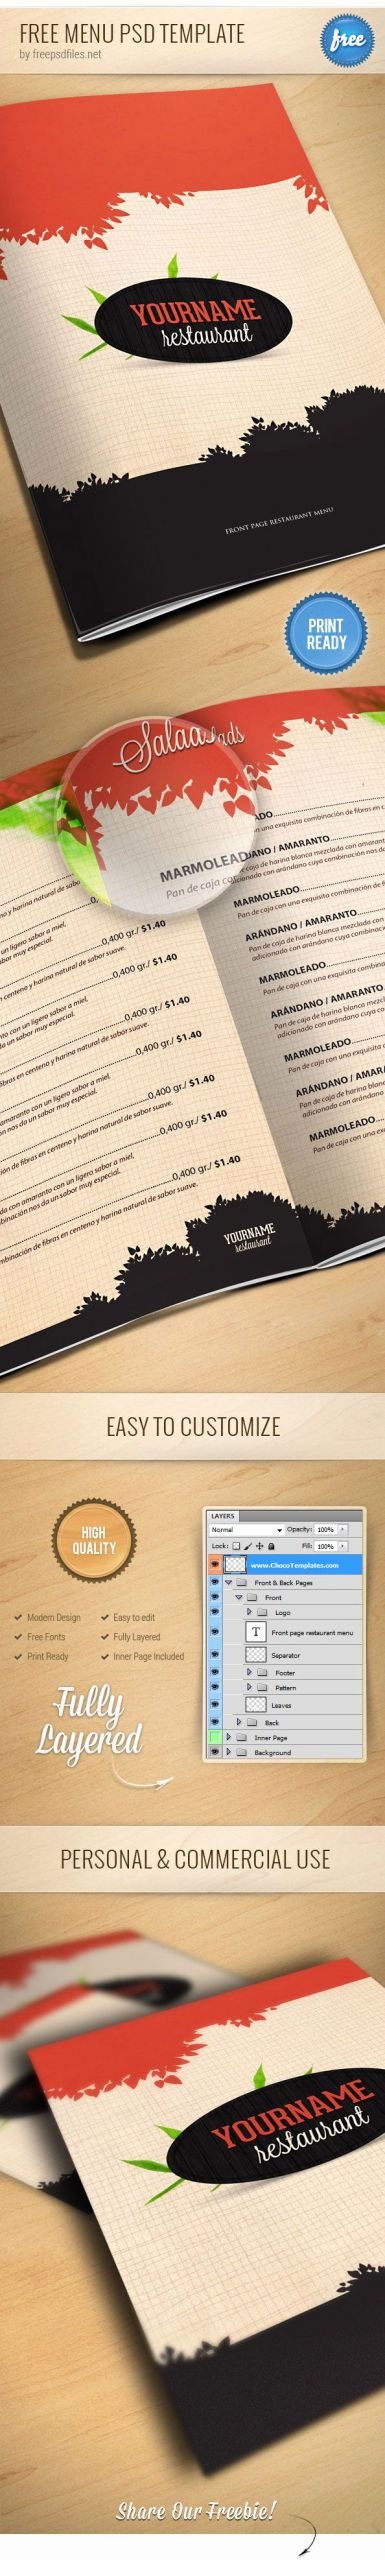 Restaurant Menu Template Psd Luxury Free Restaurant Menu Psd Template